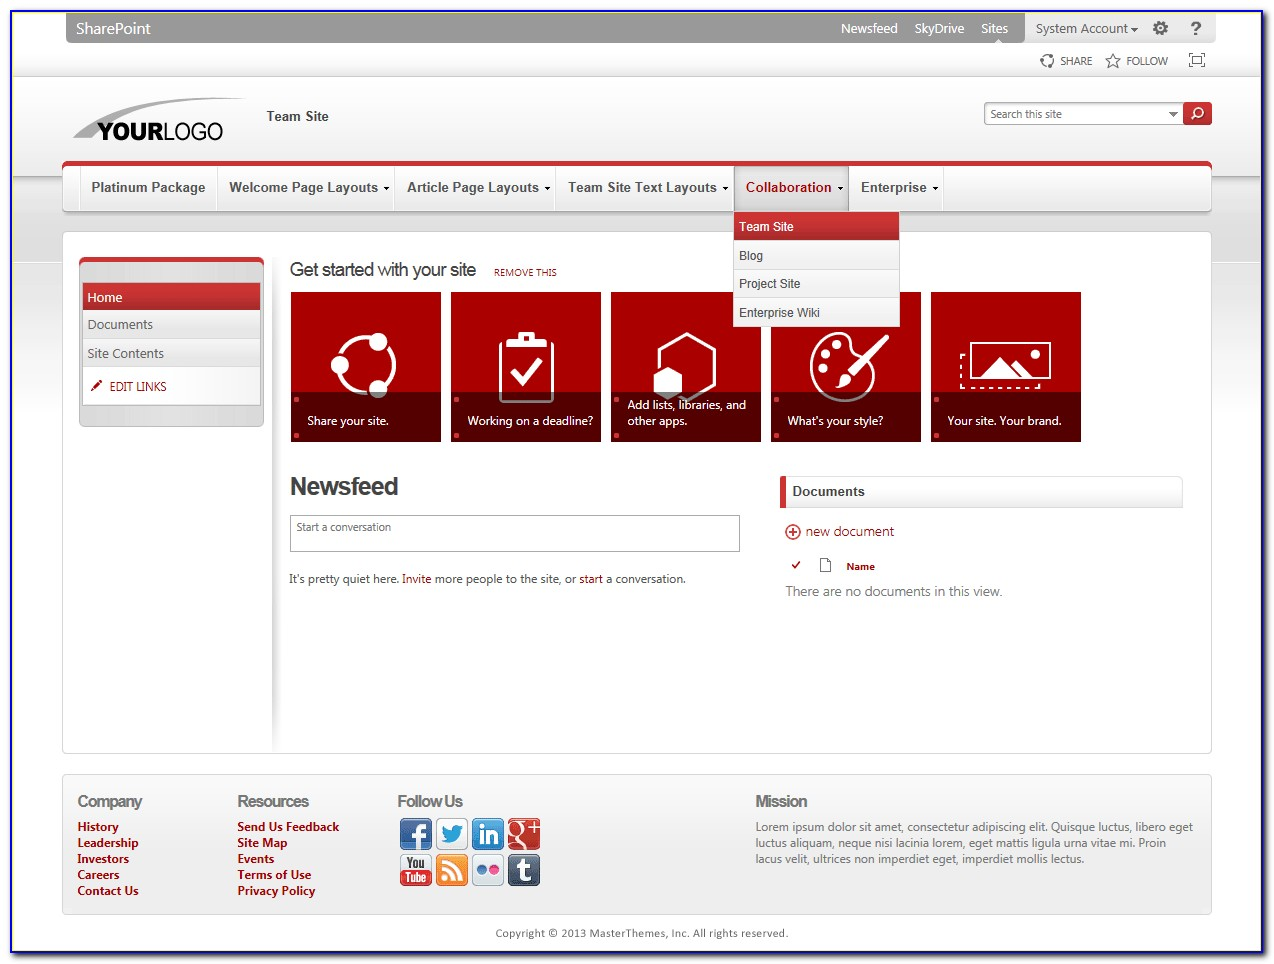 Free Sharepoint Project Management Templates From Brightwork